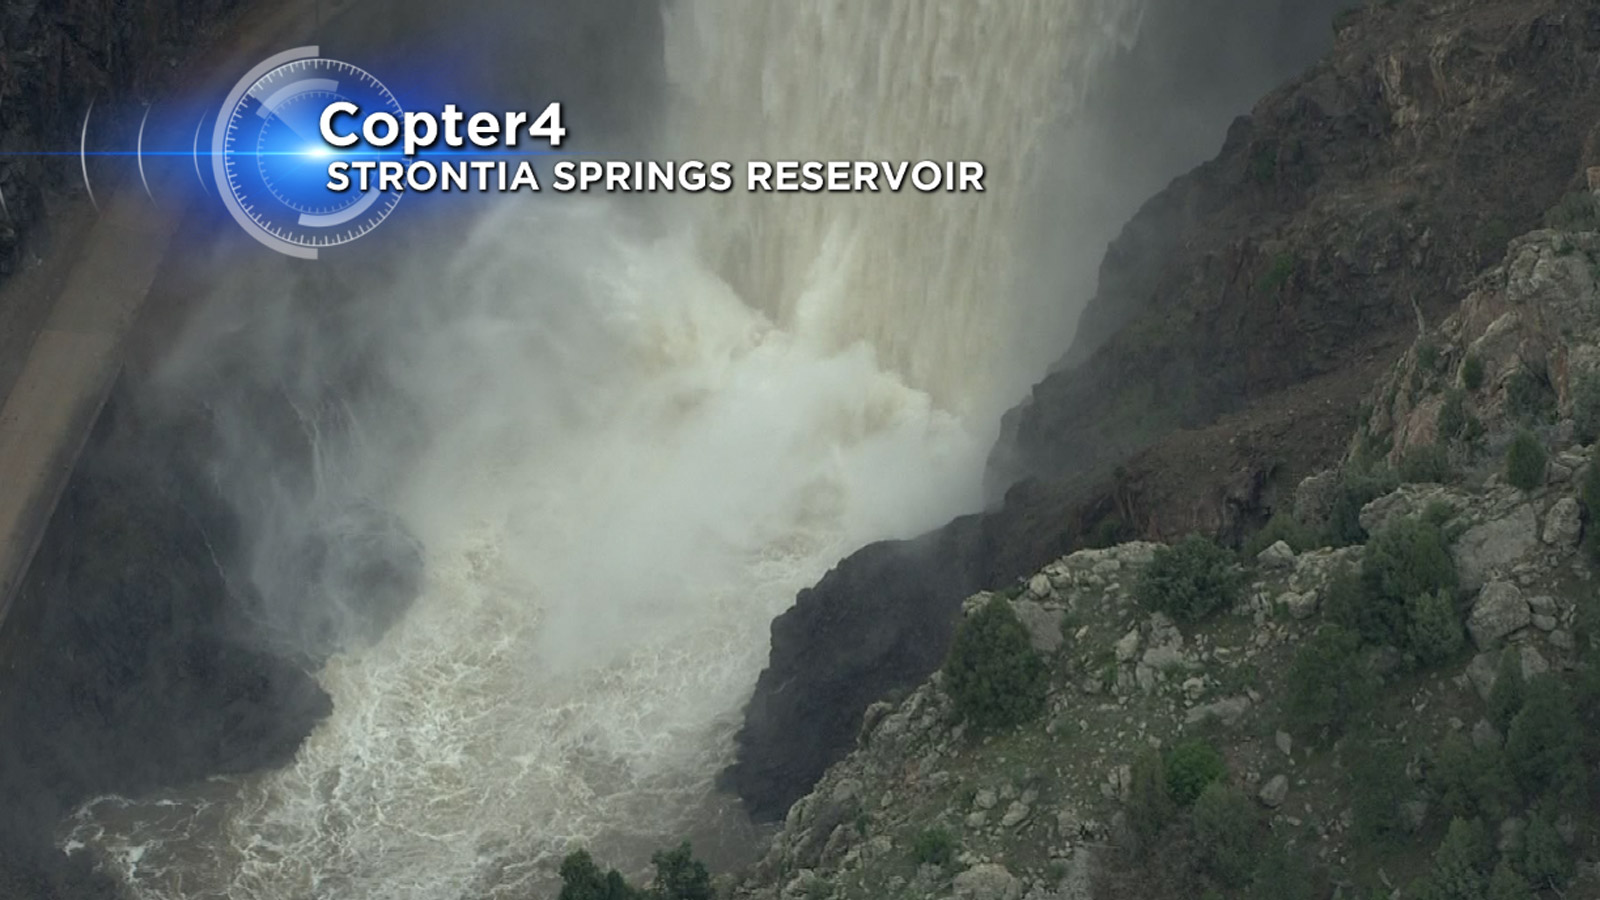 Copter4 flew over Strontia Springs Reservoir on Wednesday  (credit: CBS)